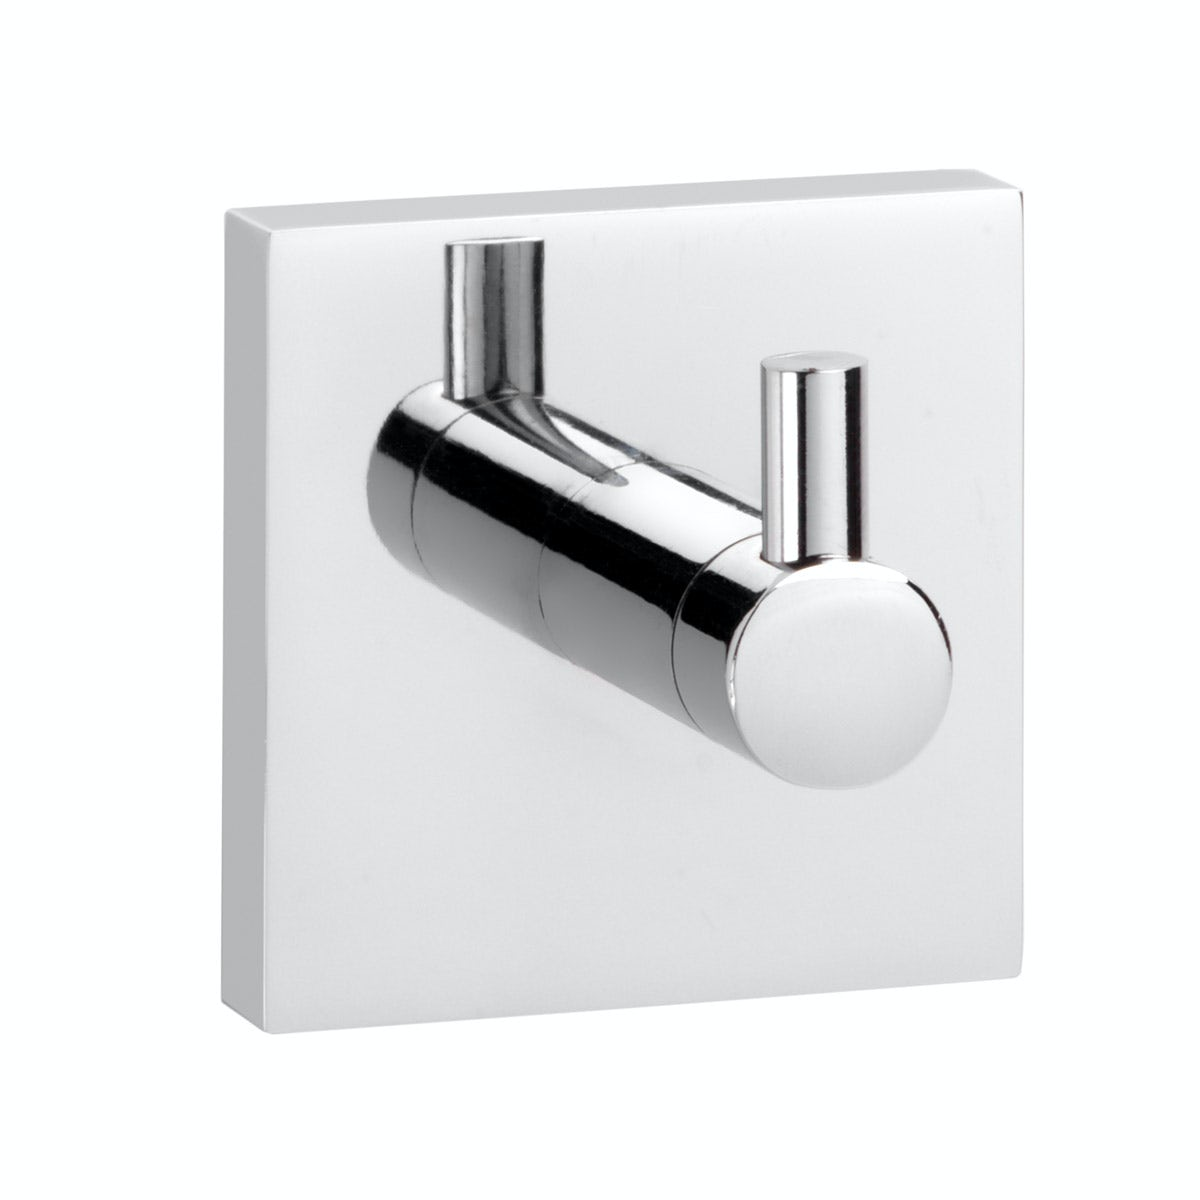 Croydex Chester robe hook